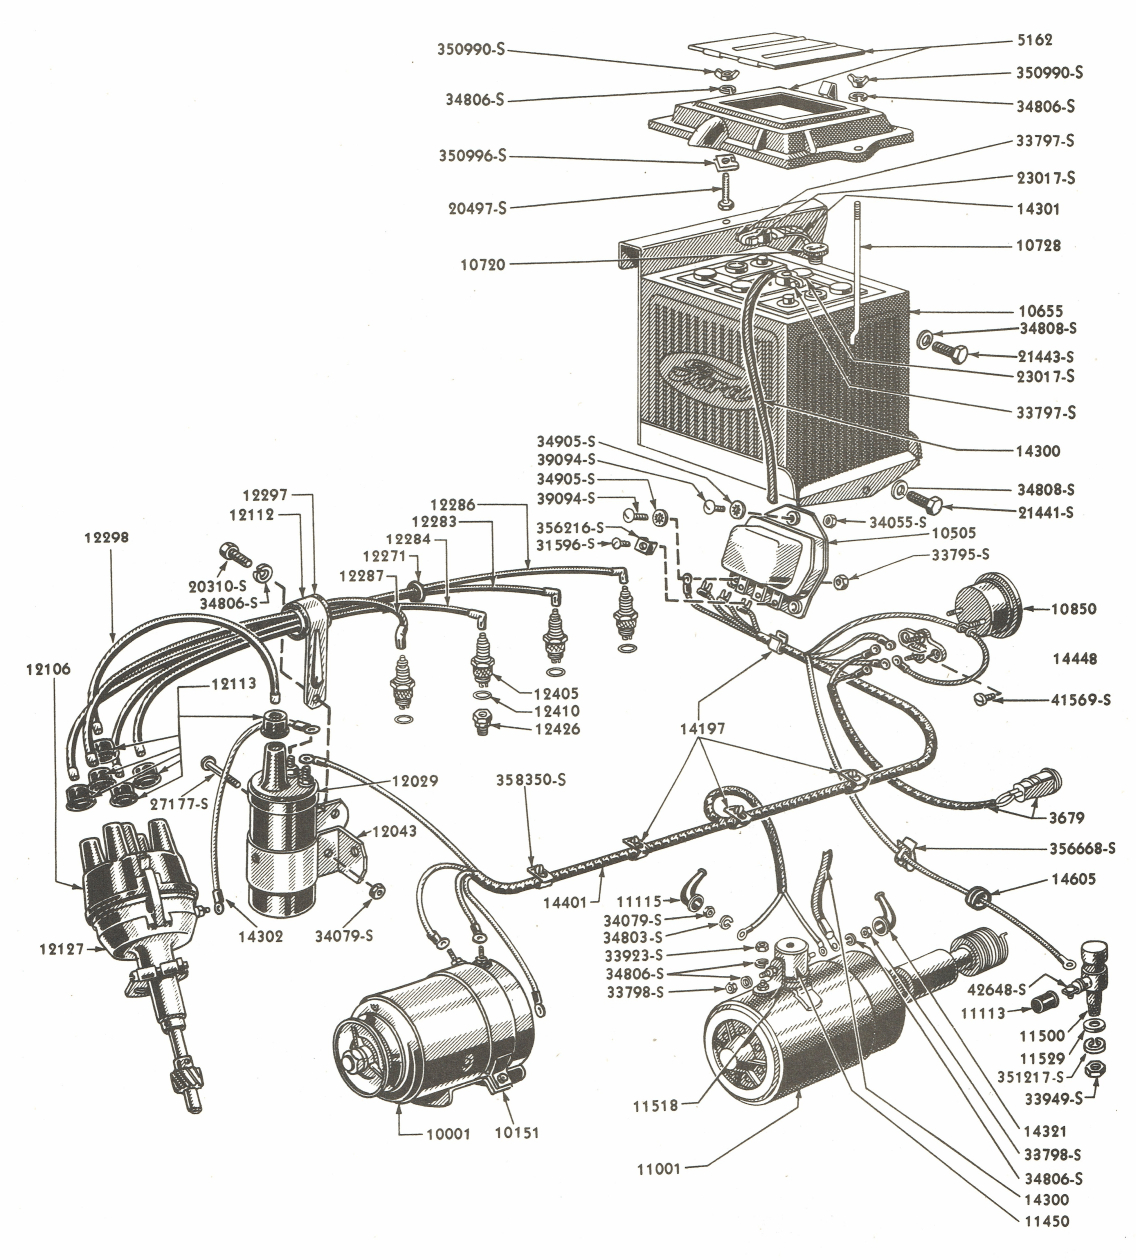 ford 2000 tractor wiring diagram - zonealarm  results  zonealarm safe search